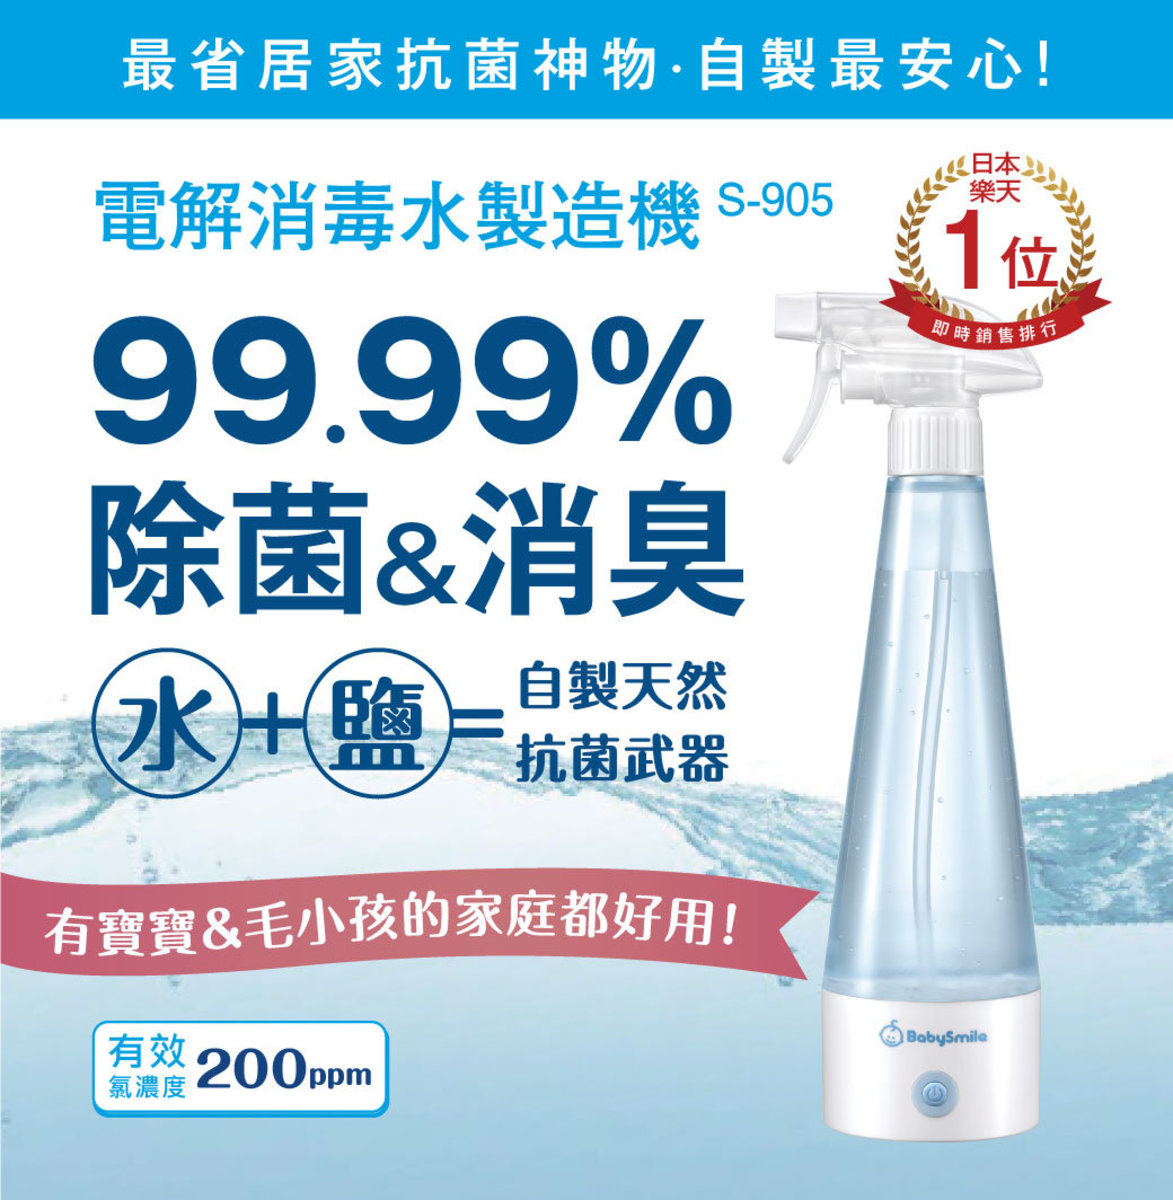 Electrolysis next sub-water generator S-905 Japan BabySmile electrolytic disinfection water